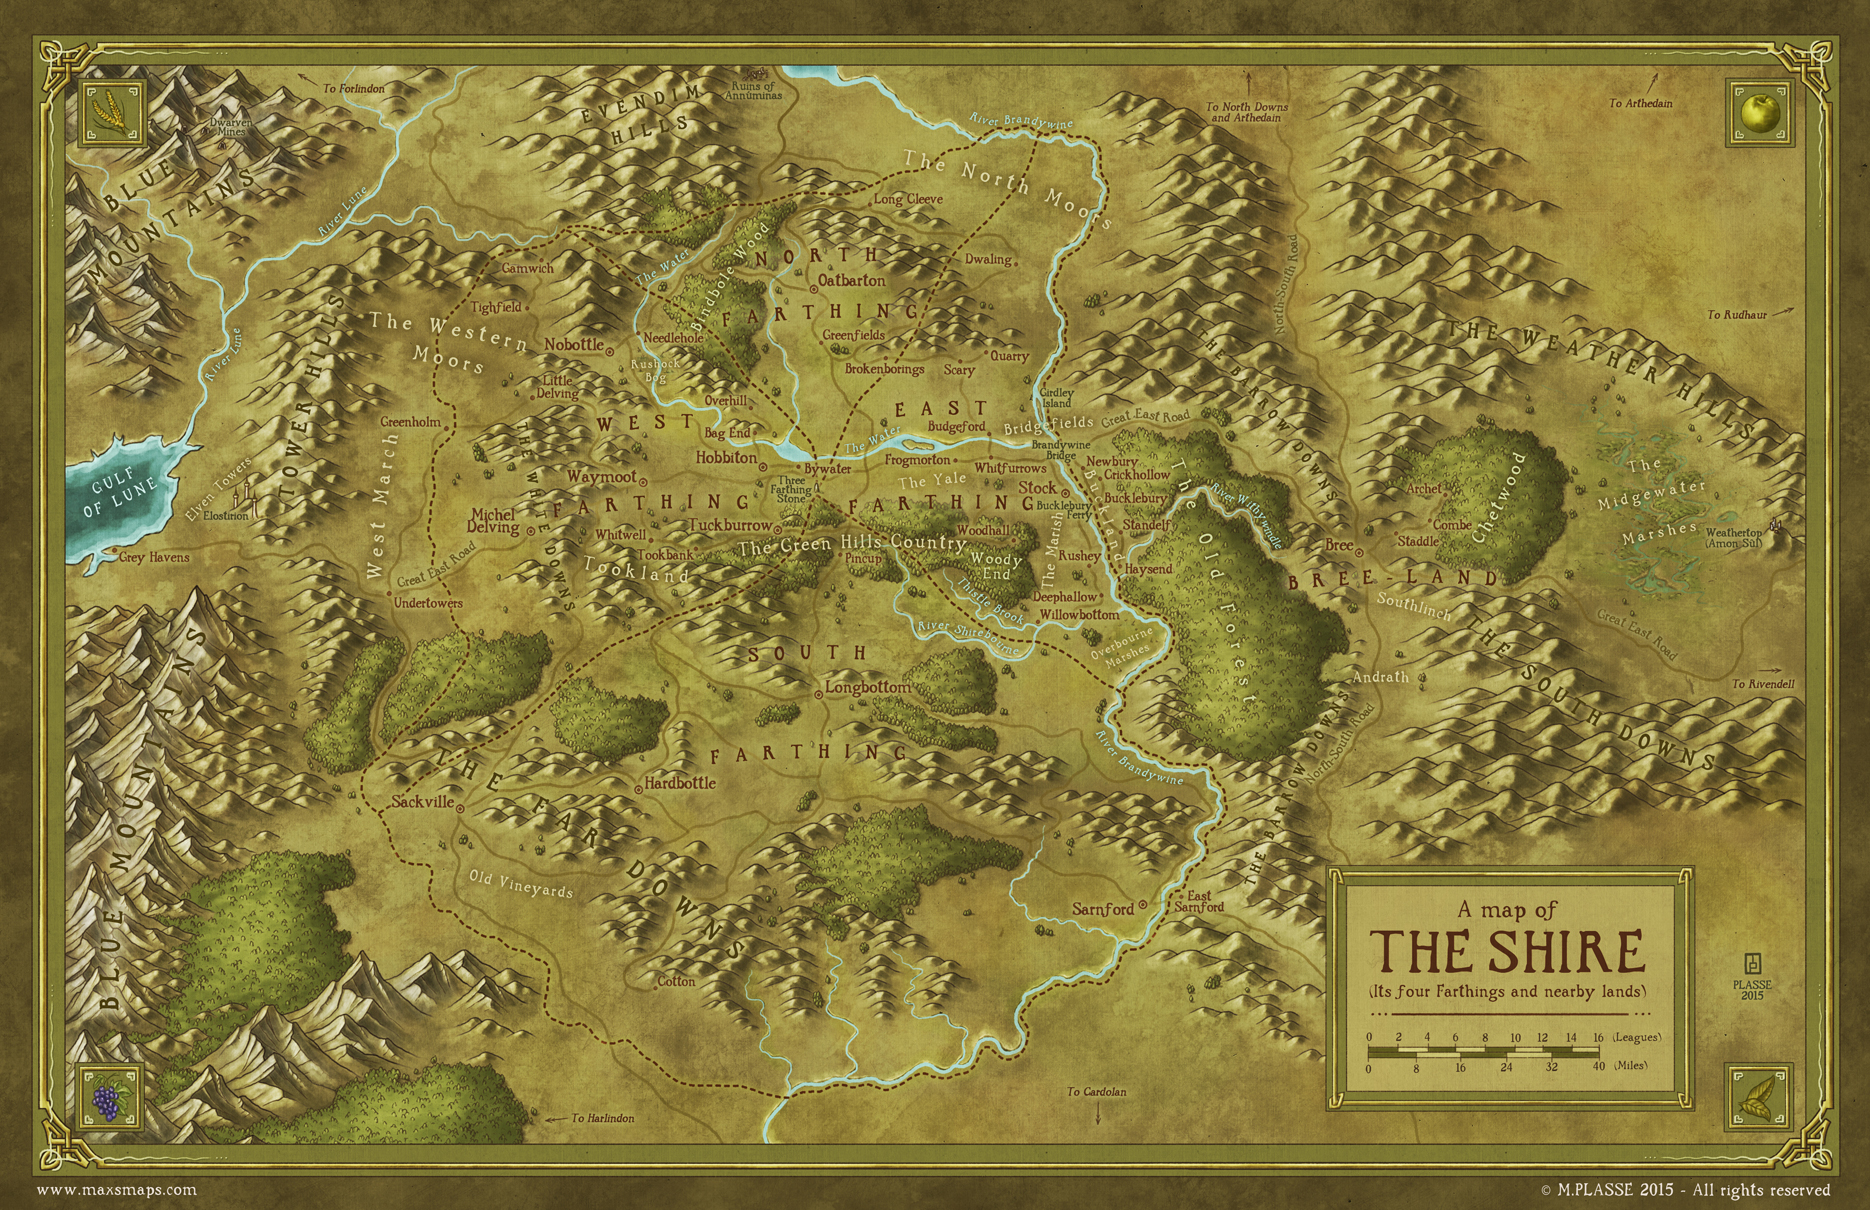 The Shire (from LOTR)